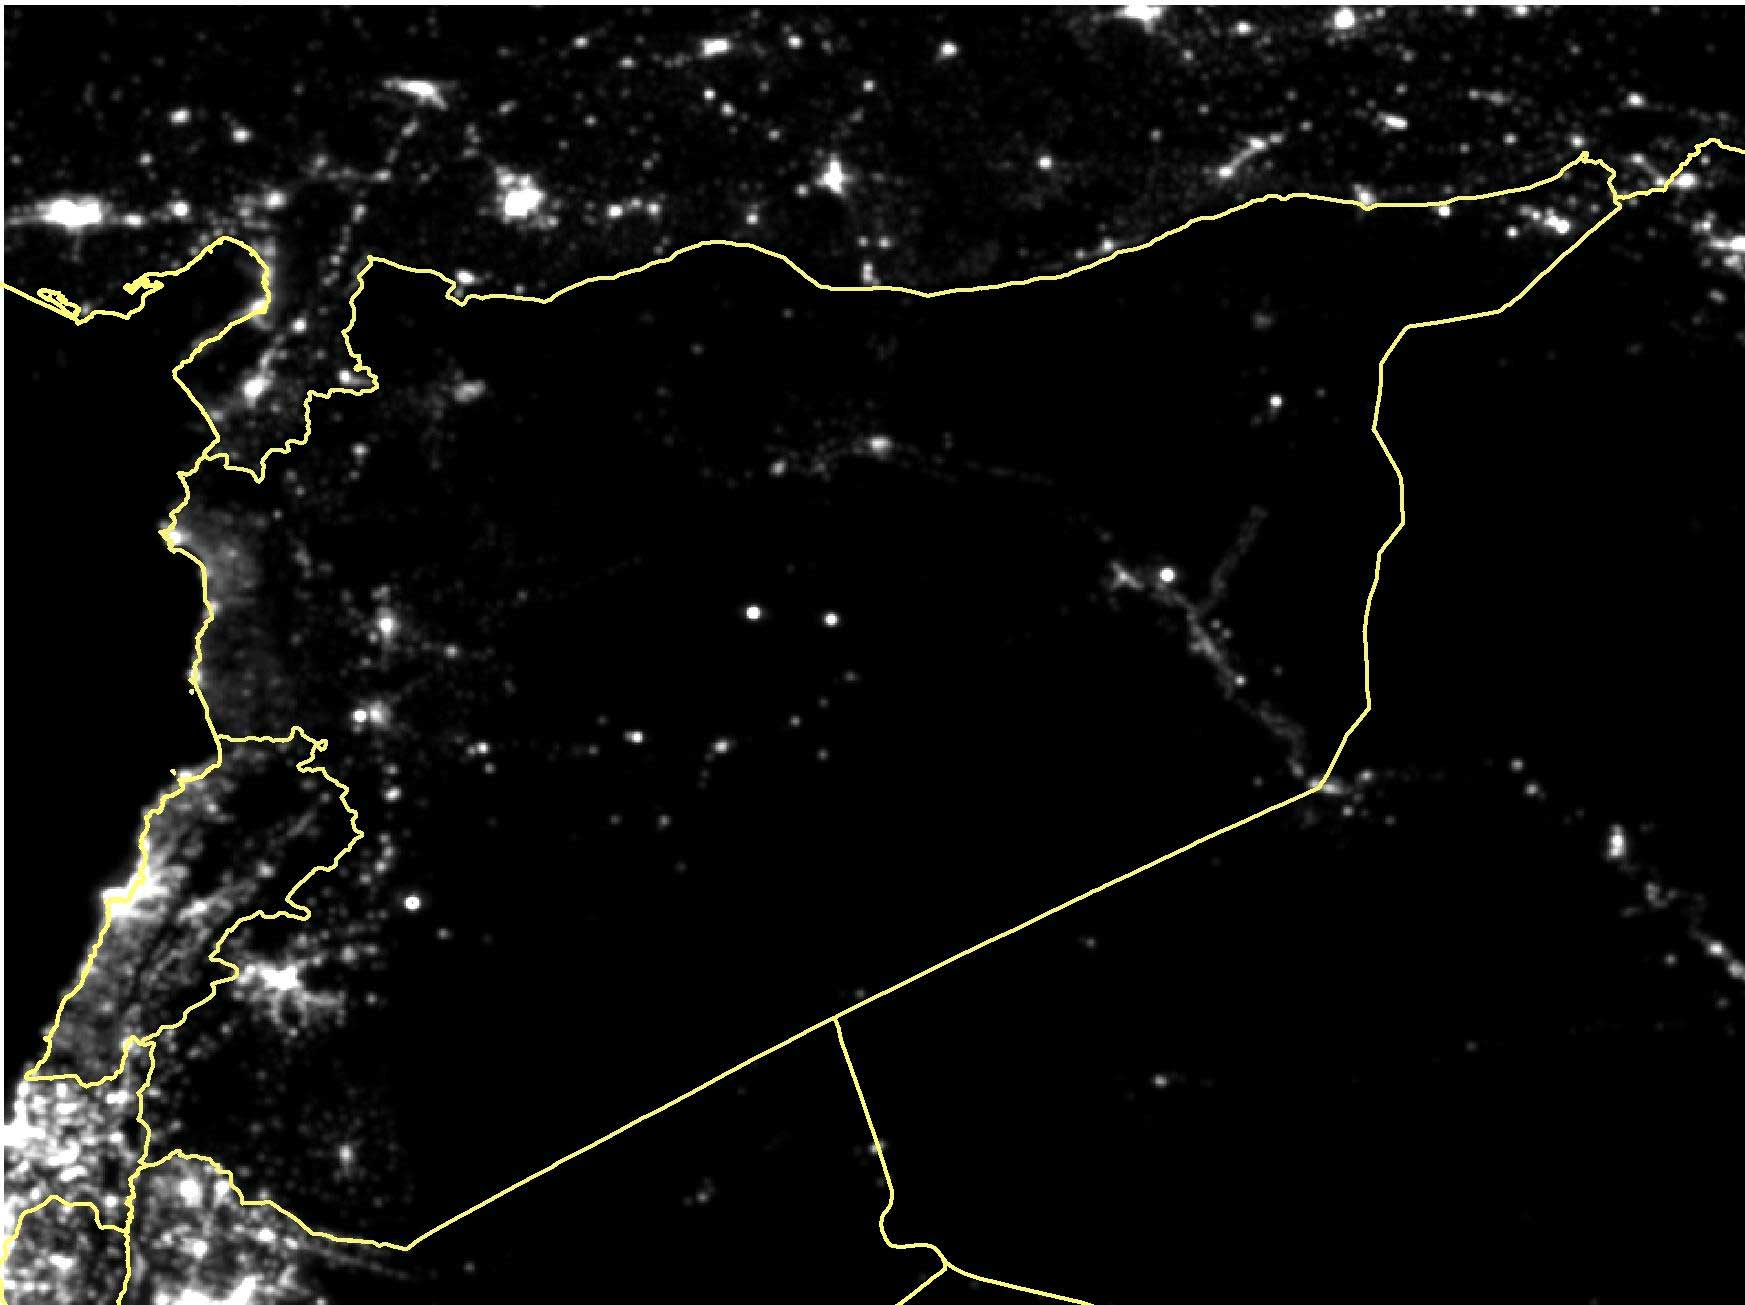 Satellite imagery of Syria in September 2014.